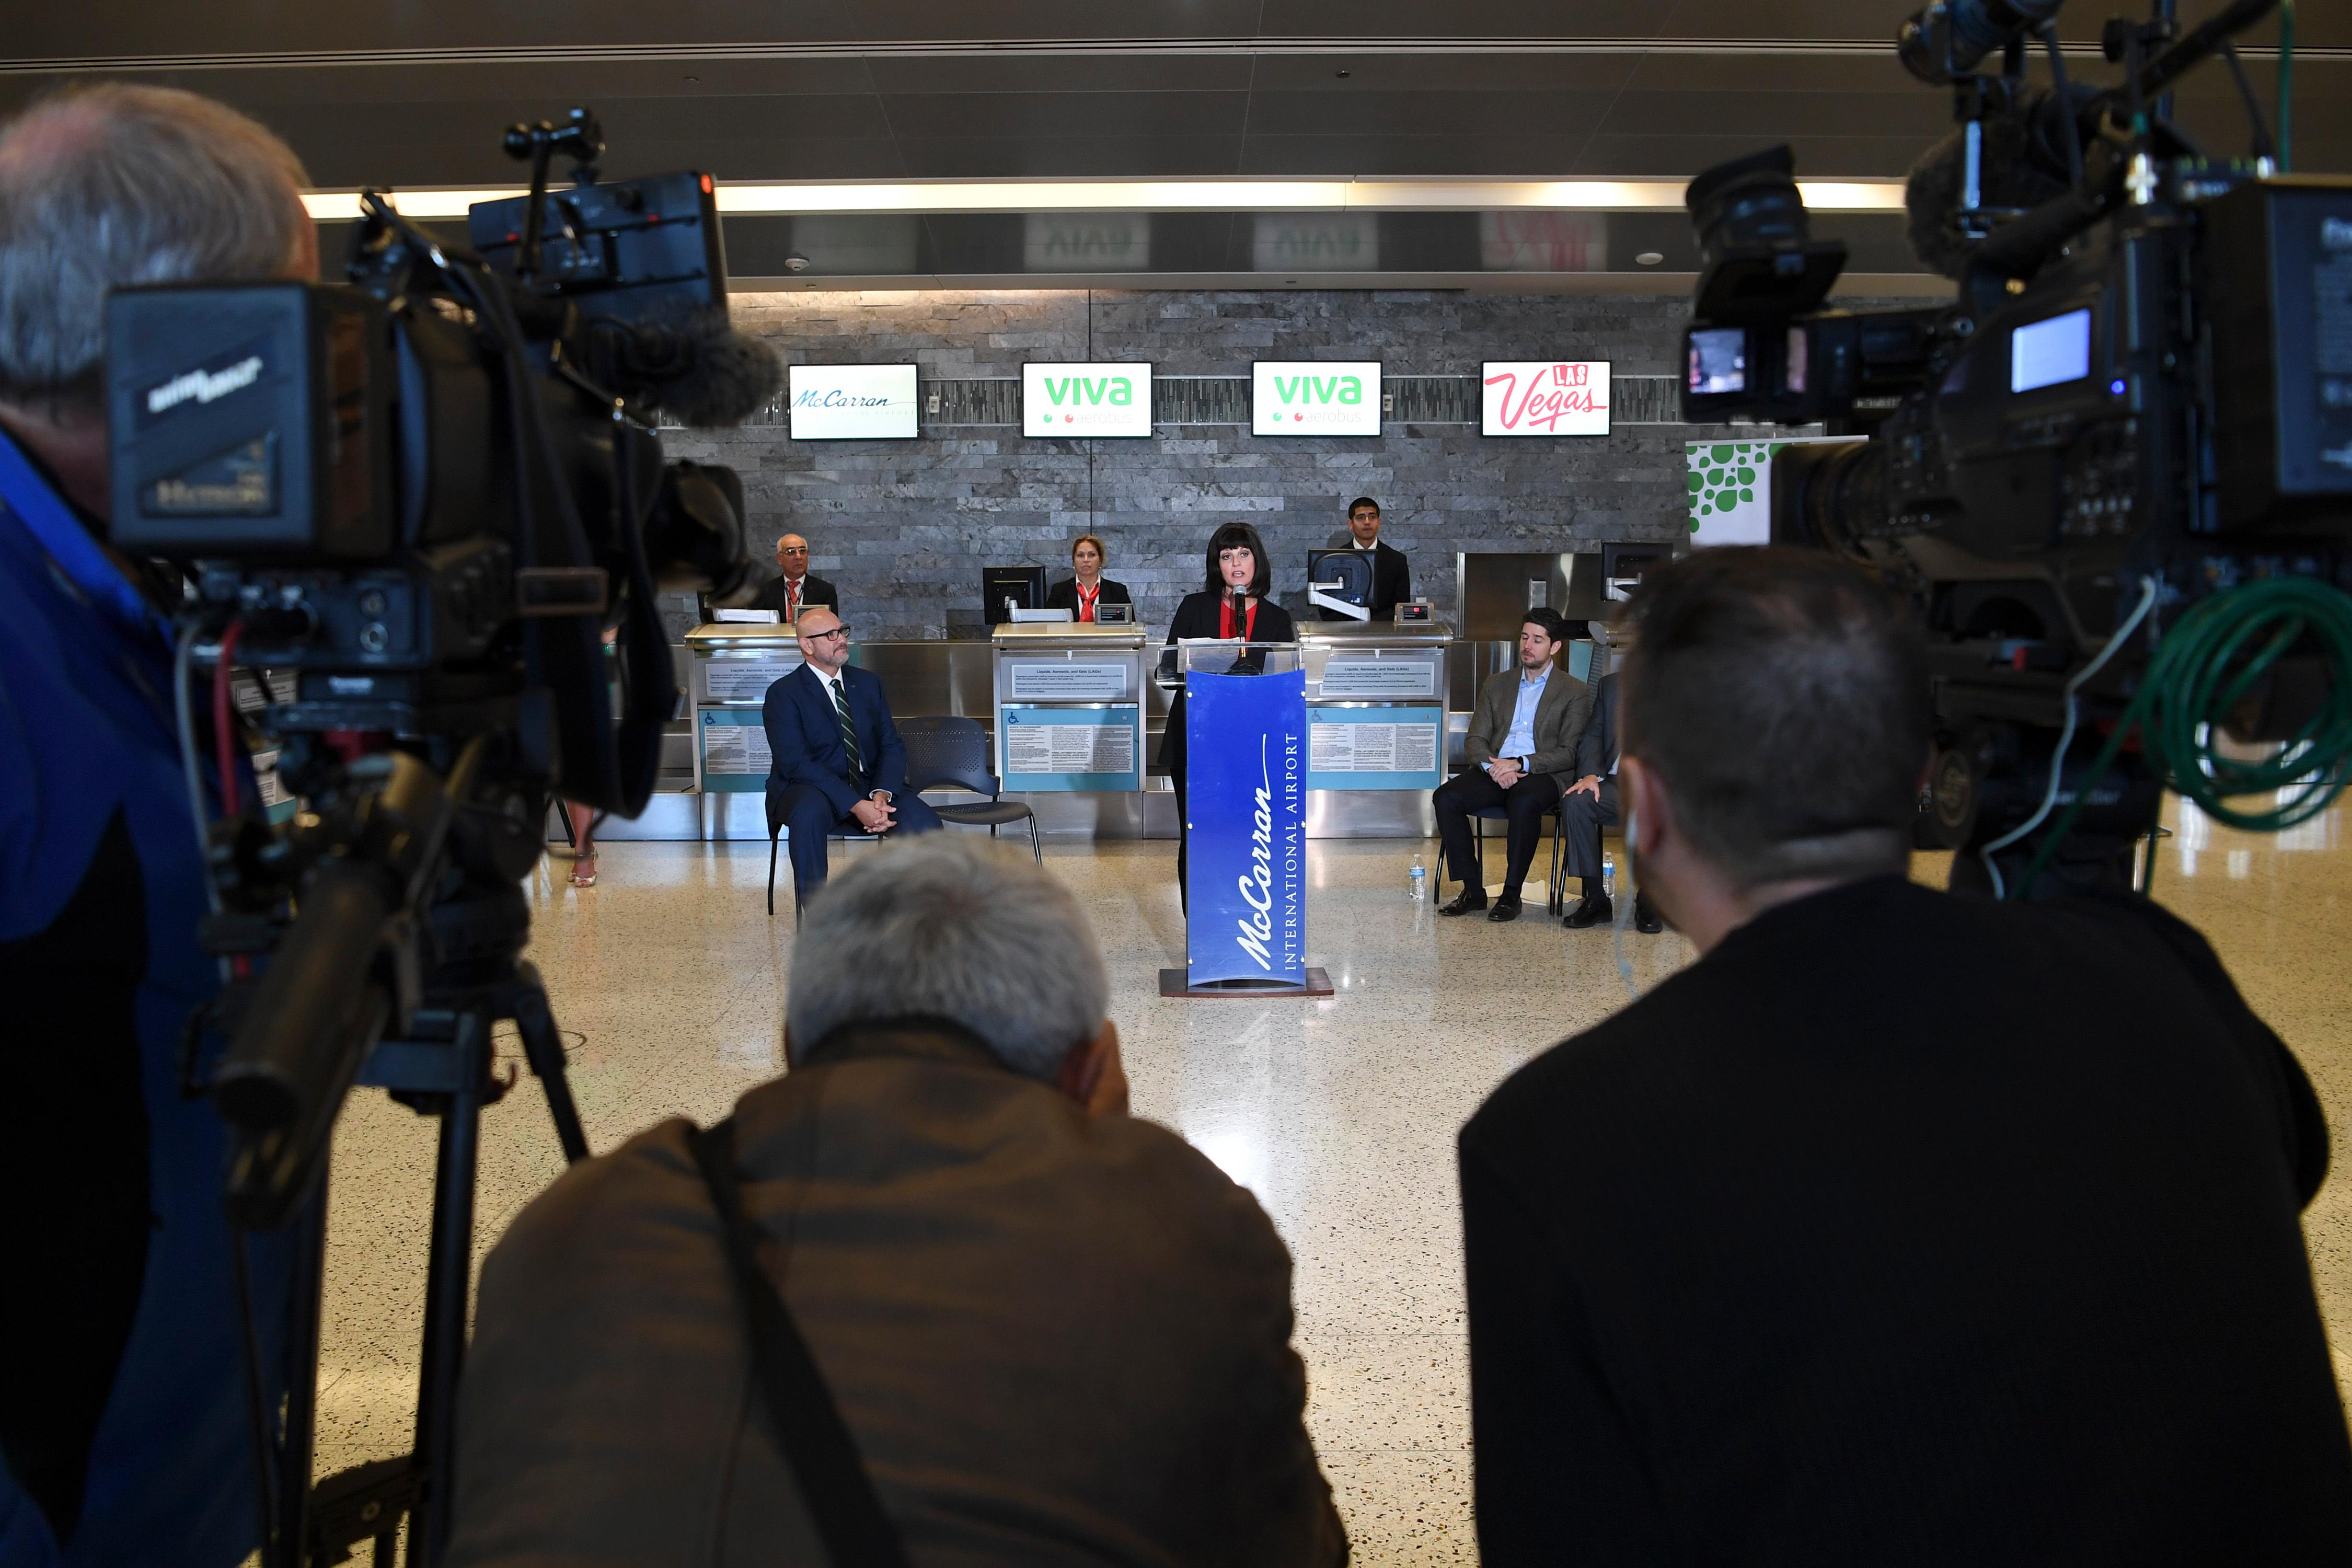 Clark County Aviation Director Rosemary Vassiliadis speaks during a news conference at McCarran International Airport to announce new Viva Aerobus service between Las Vegas and Mexico City Friday, December 15, 2017. CREDIT: Sam Morris/Las Vegas News Bureau